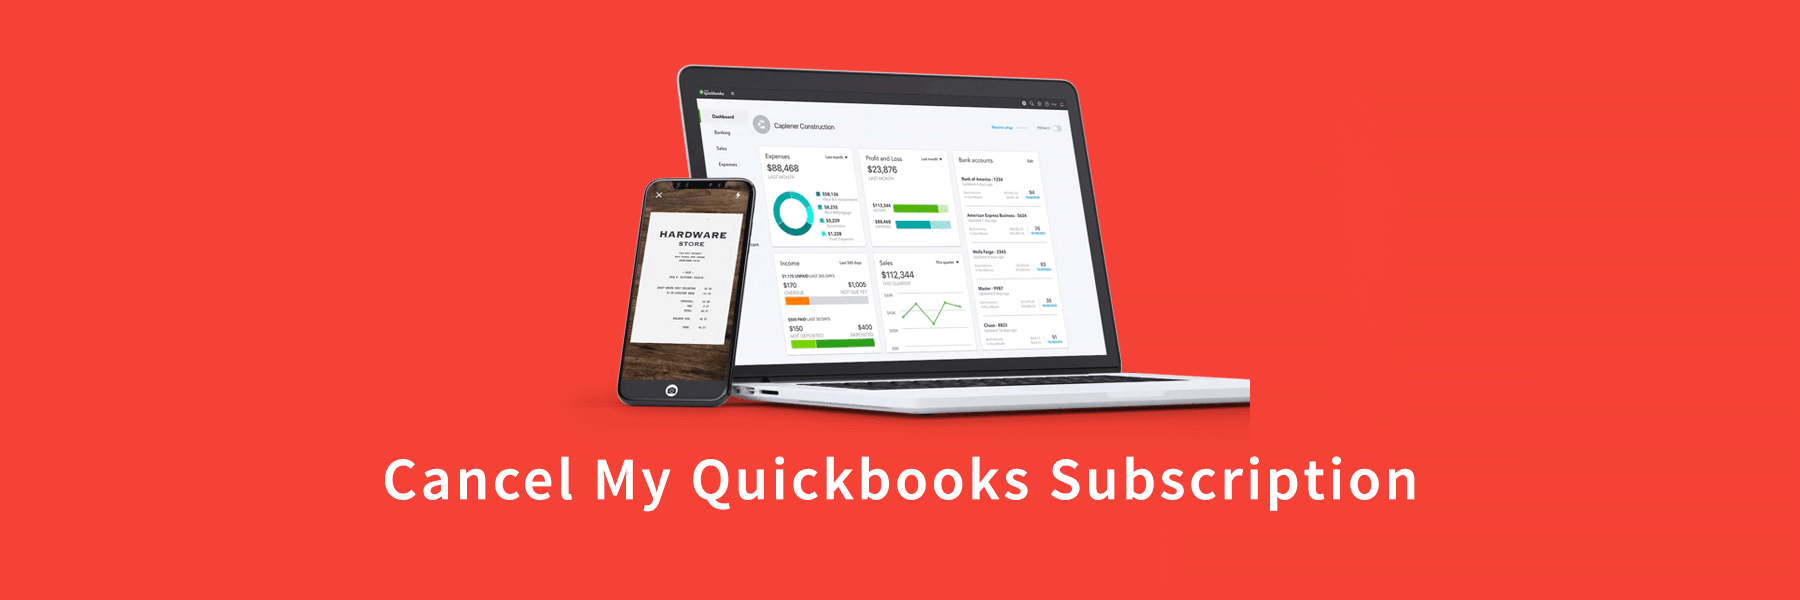 Cancel My Quickbooks Subscription